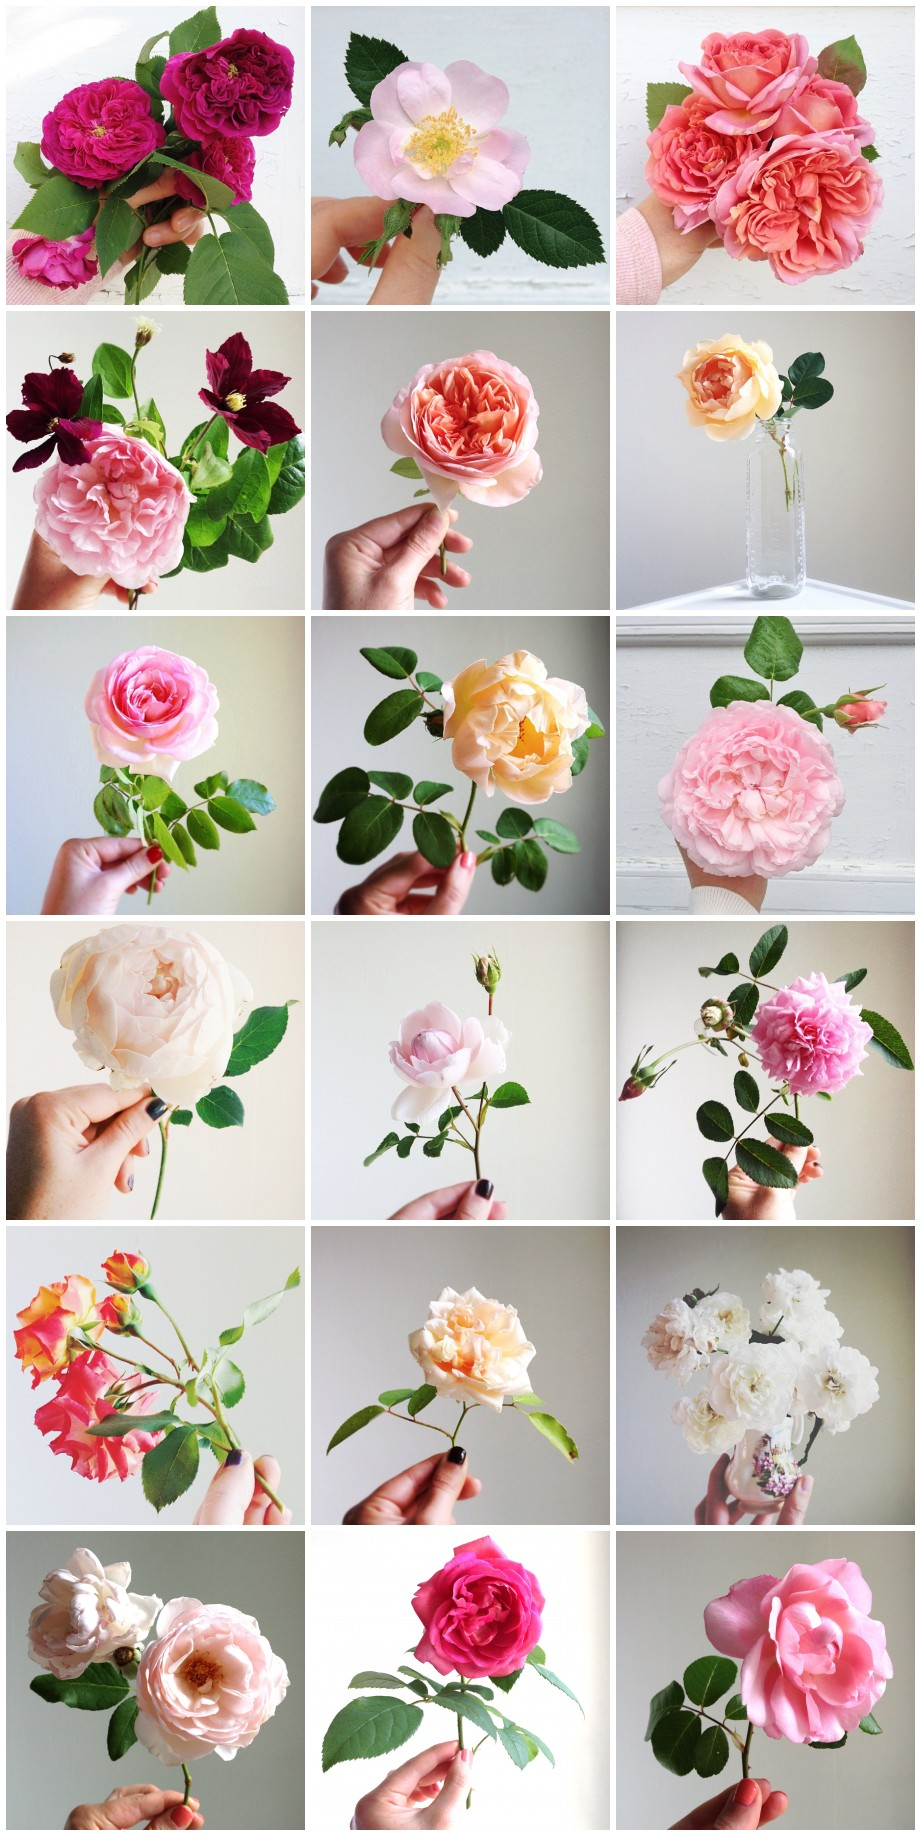 Simple Beauty - A Collection of Roses via Hedgerow Rose